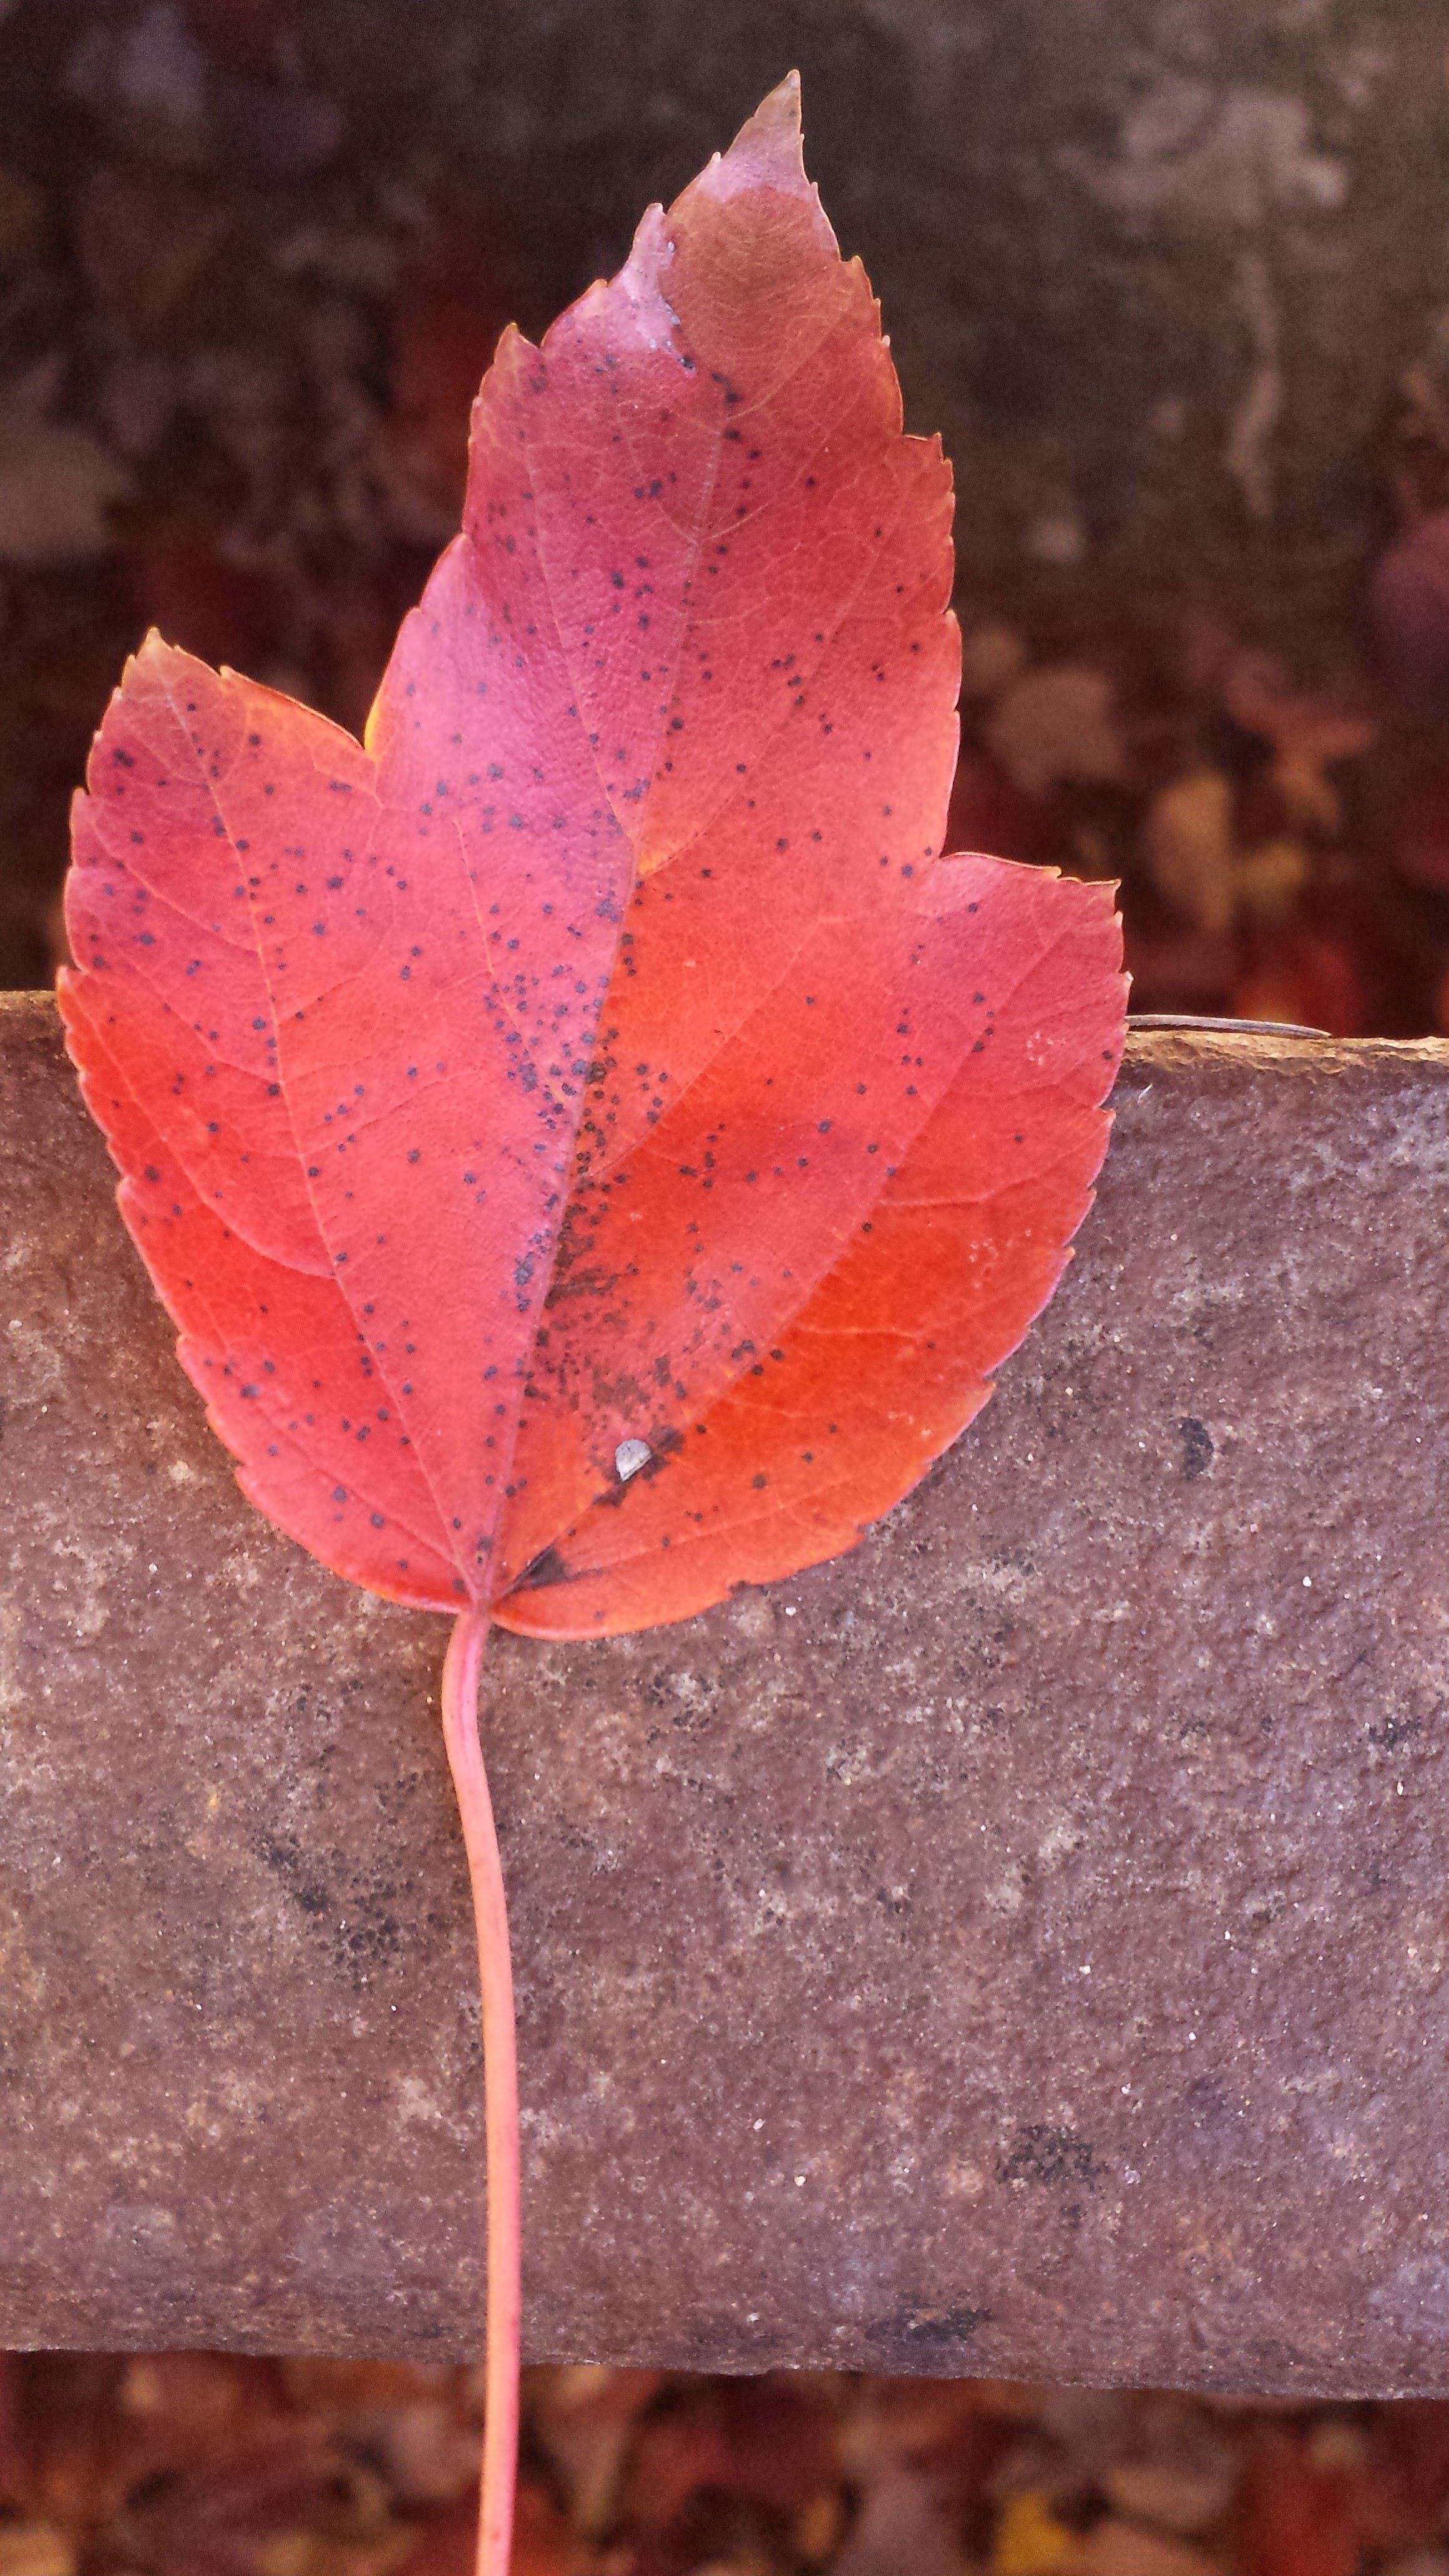 Free stock photo of autumn leaf, fall, fallen leaves